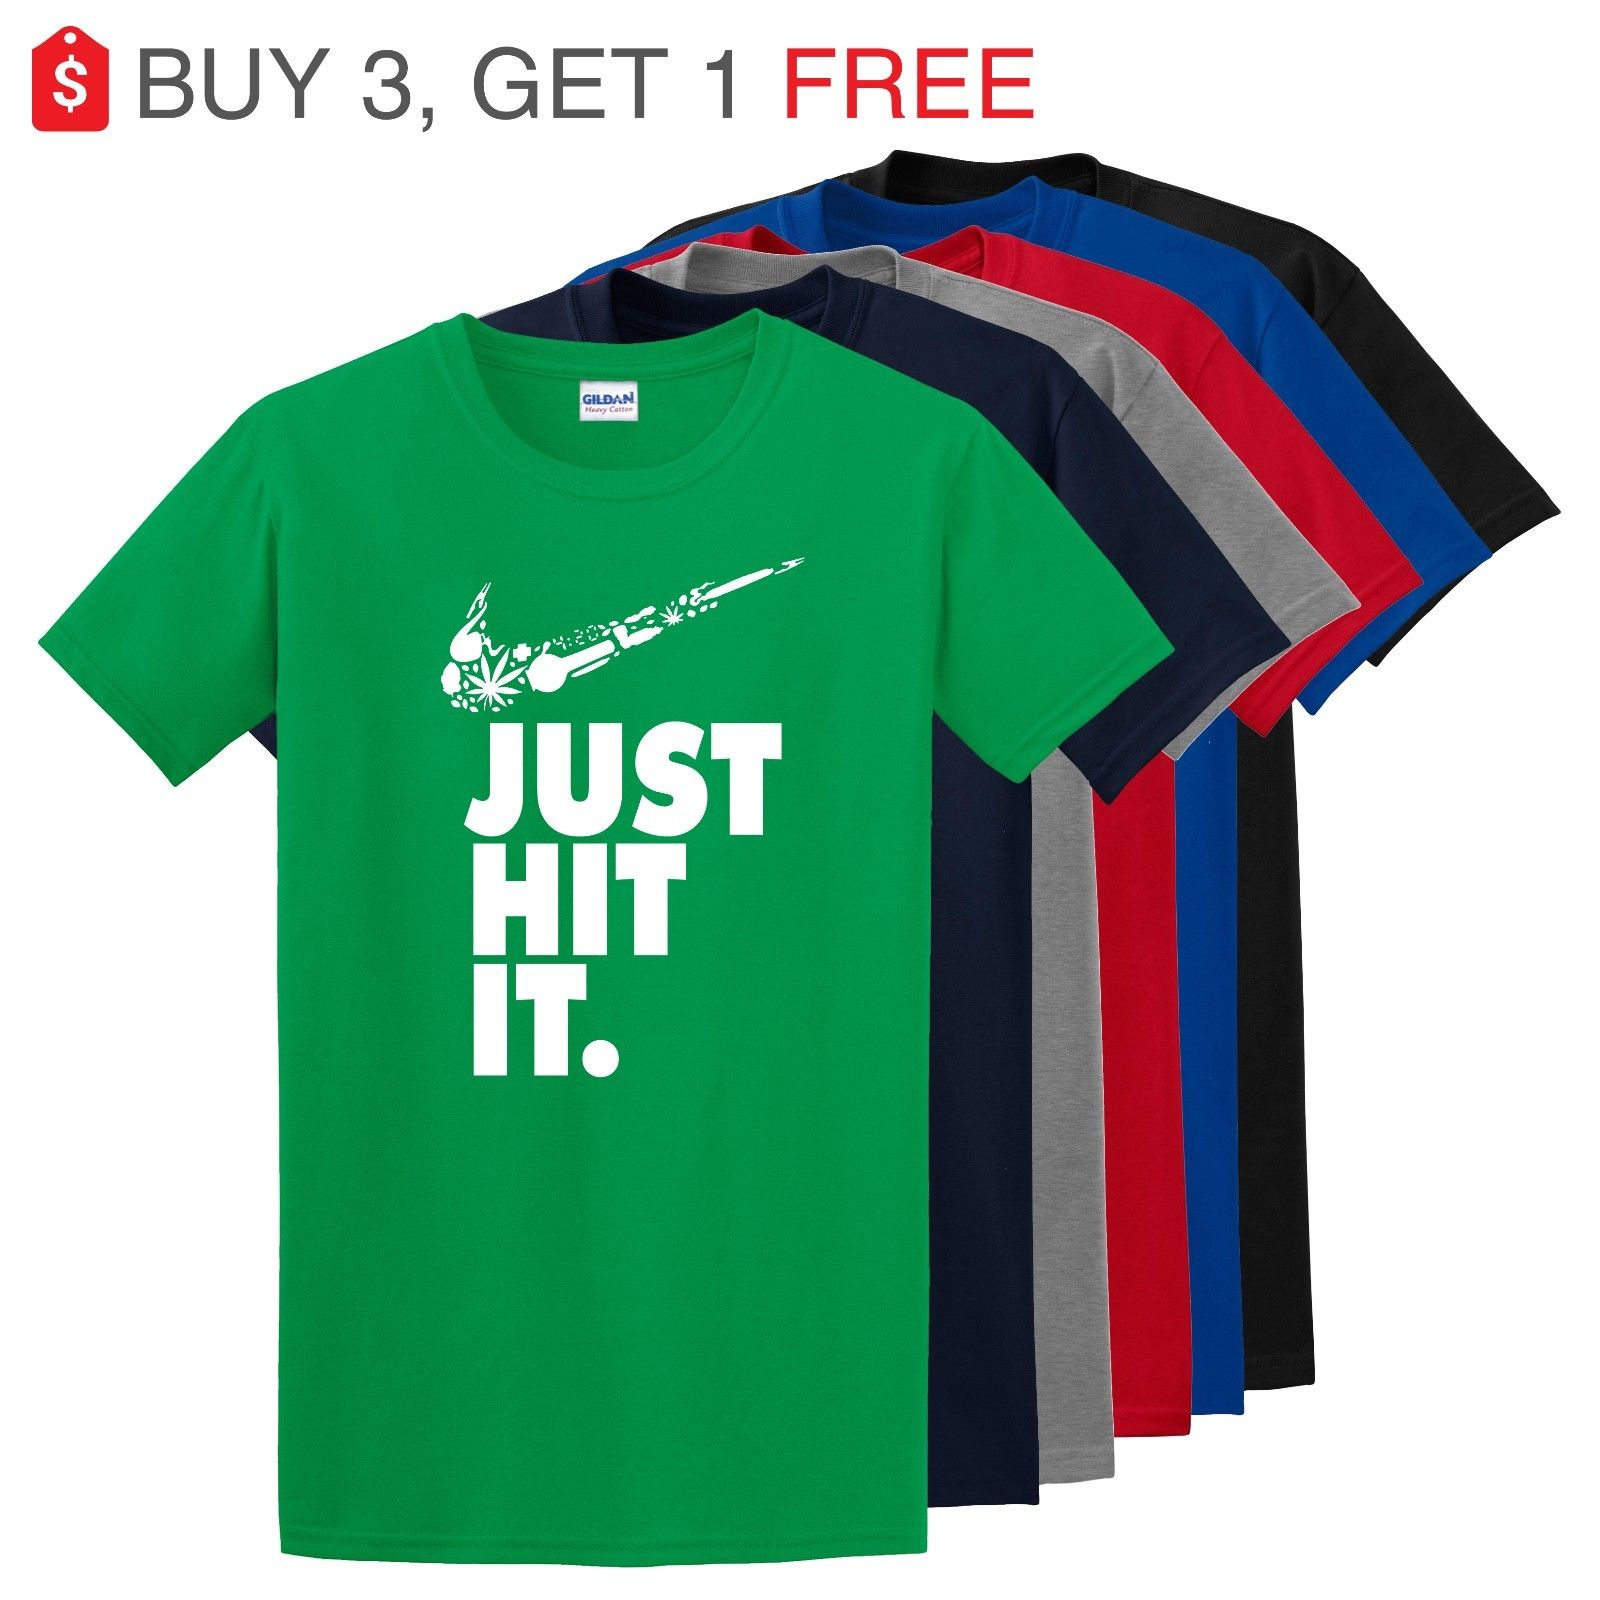 Nike Just Hit Funny Marijuana Weed Pot 420 Black T Shirt Just do it Festival Tee 2